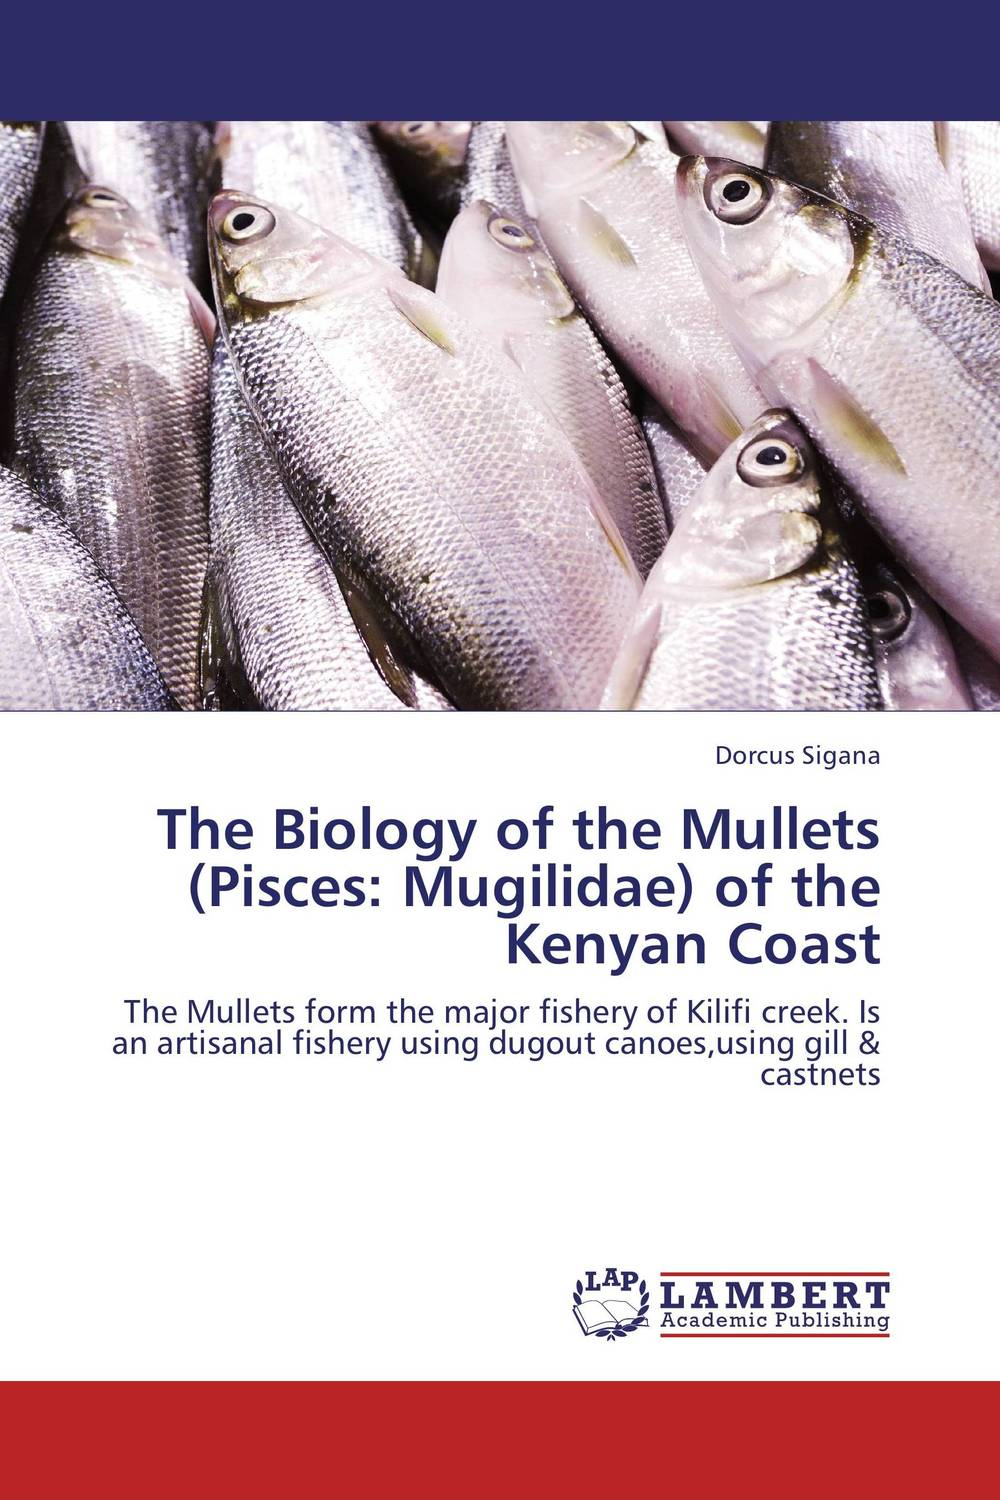 The Biology of the Mullets (Pisces: Mugilidae) of the Kenyan Coast купить